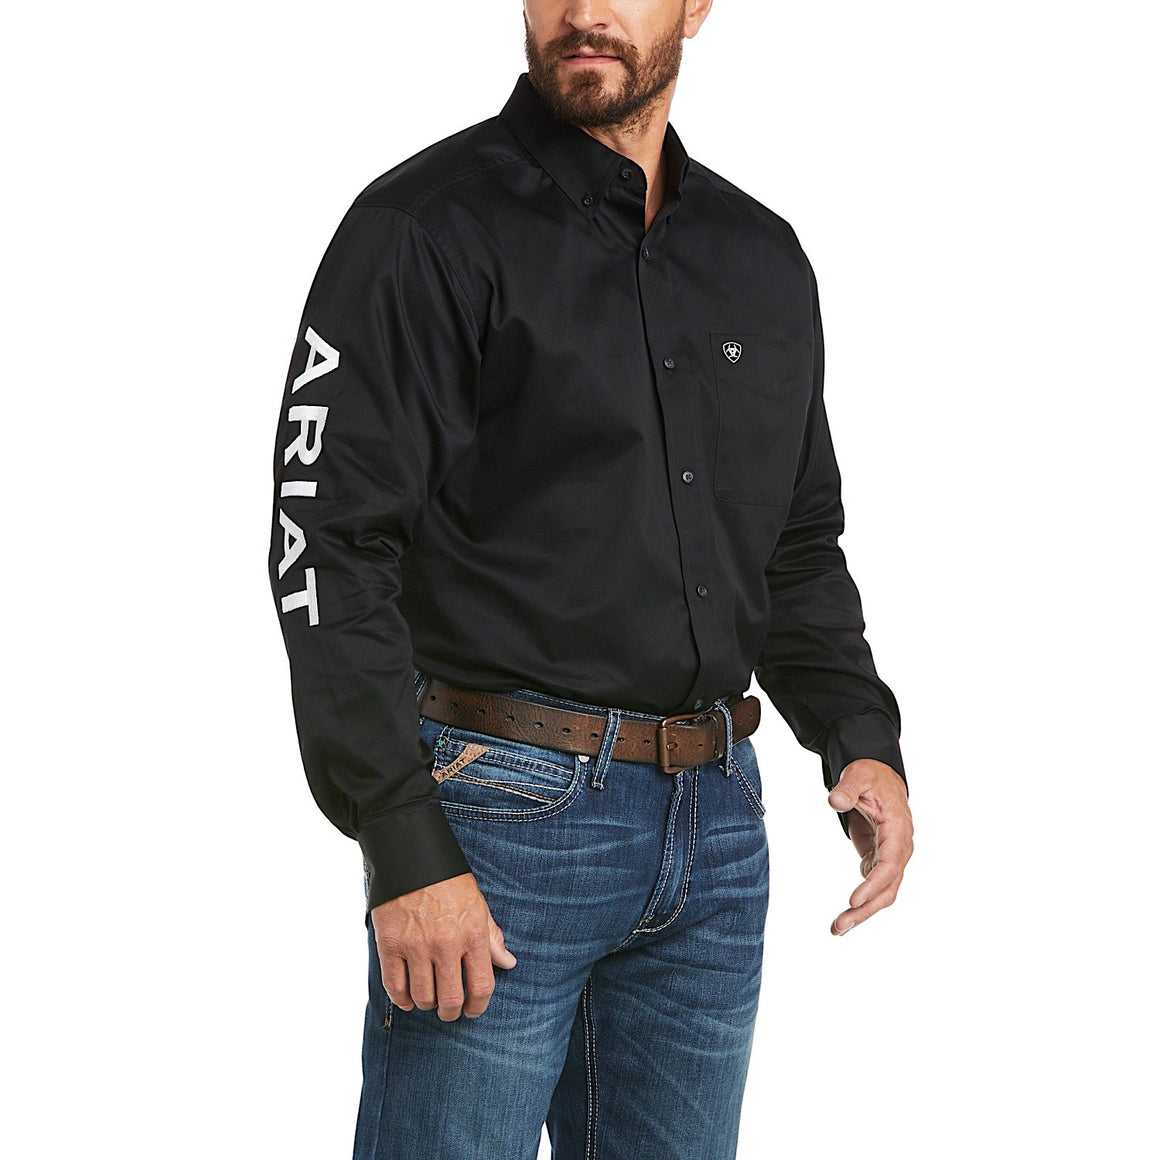 Ariat Mens Logo Twill Classic Fit Shirt Black/White